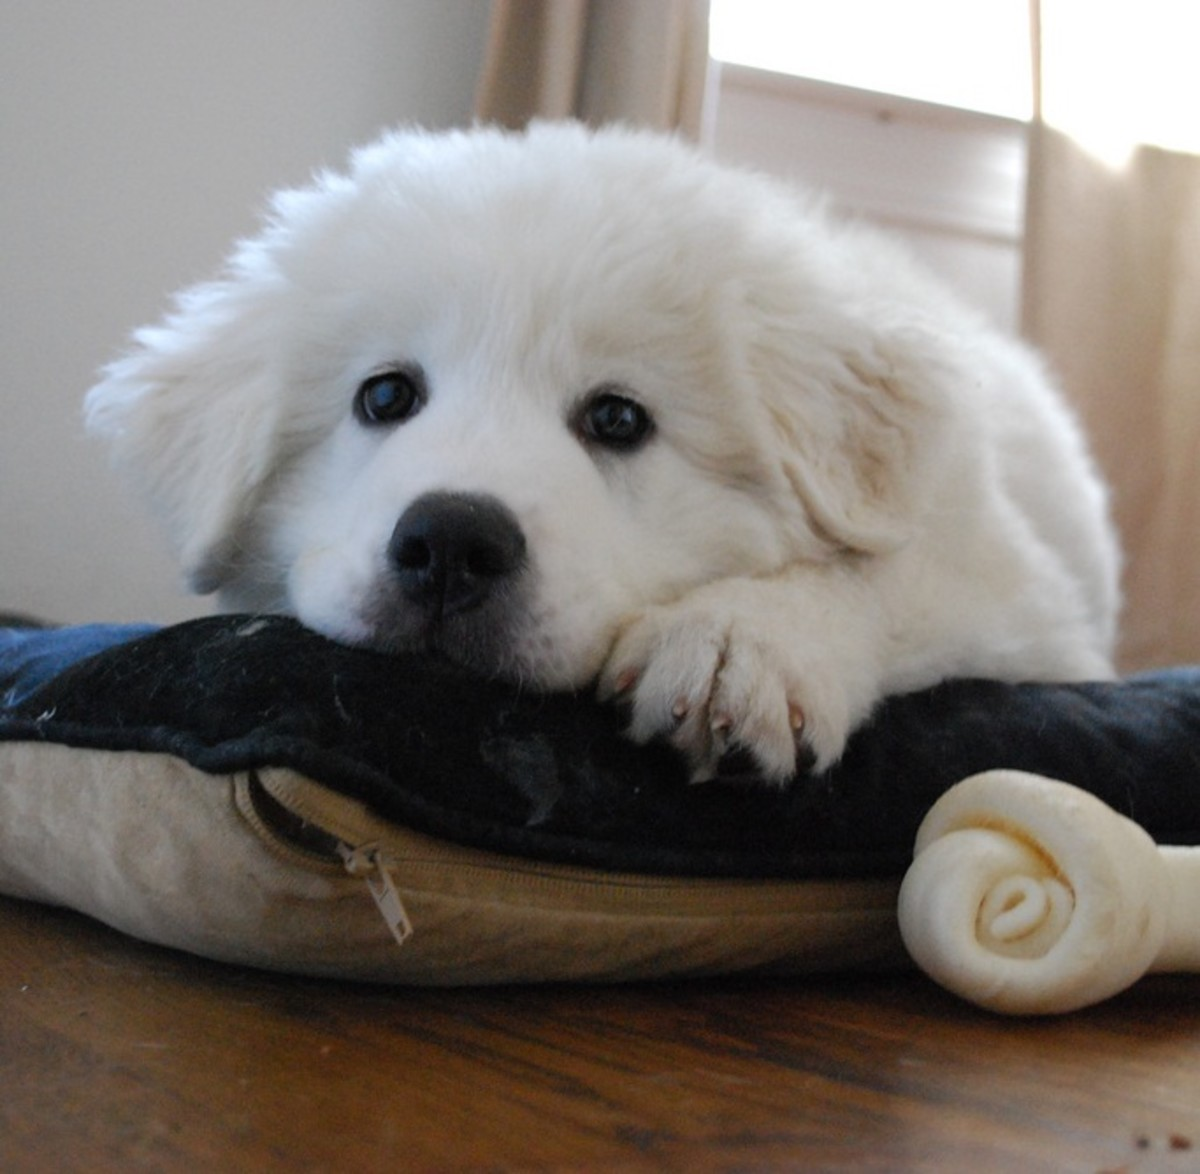 A Great Pyrenees puppy.